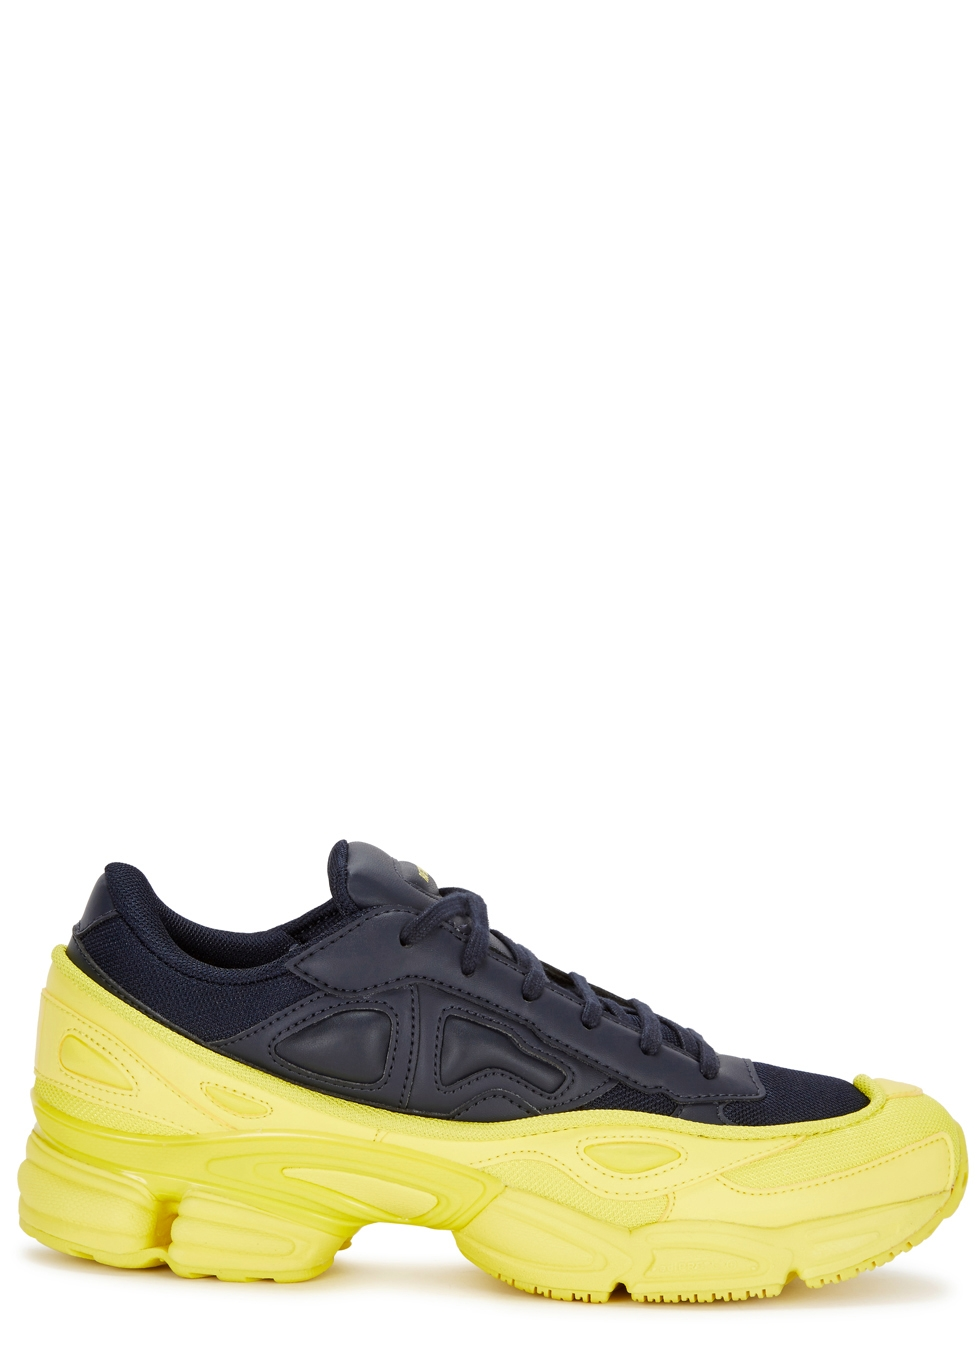 Adidas X Raf Simons Ozweego Colour-Block Leather Trainers in Yellow Navy